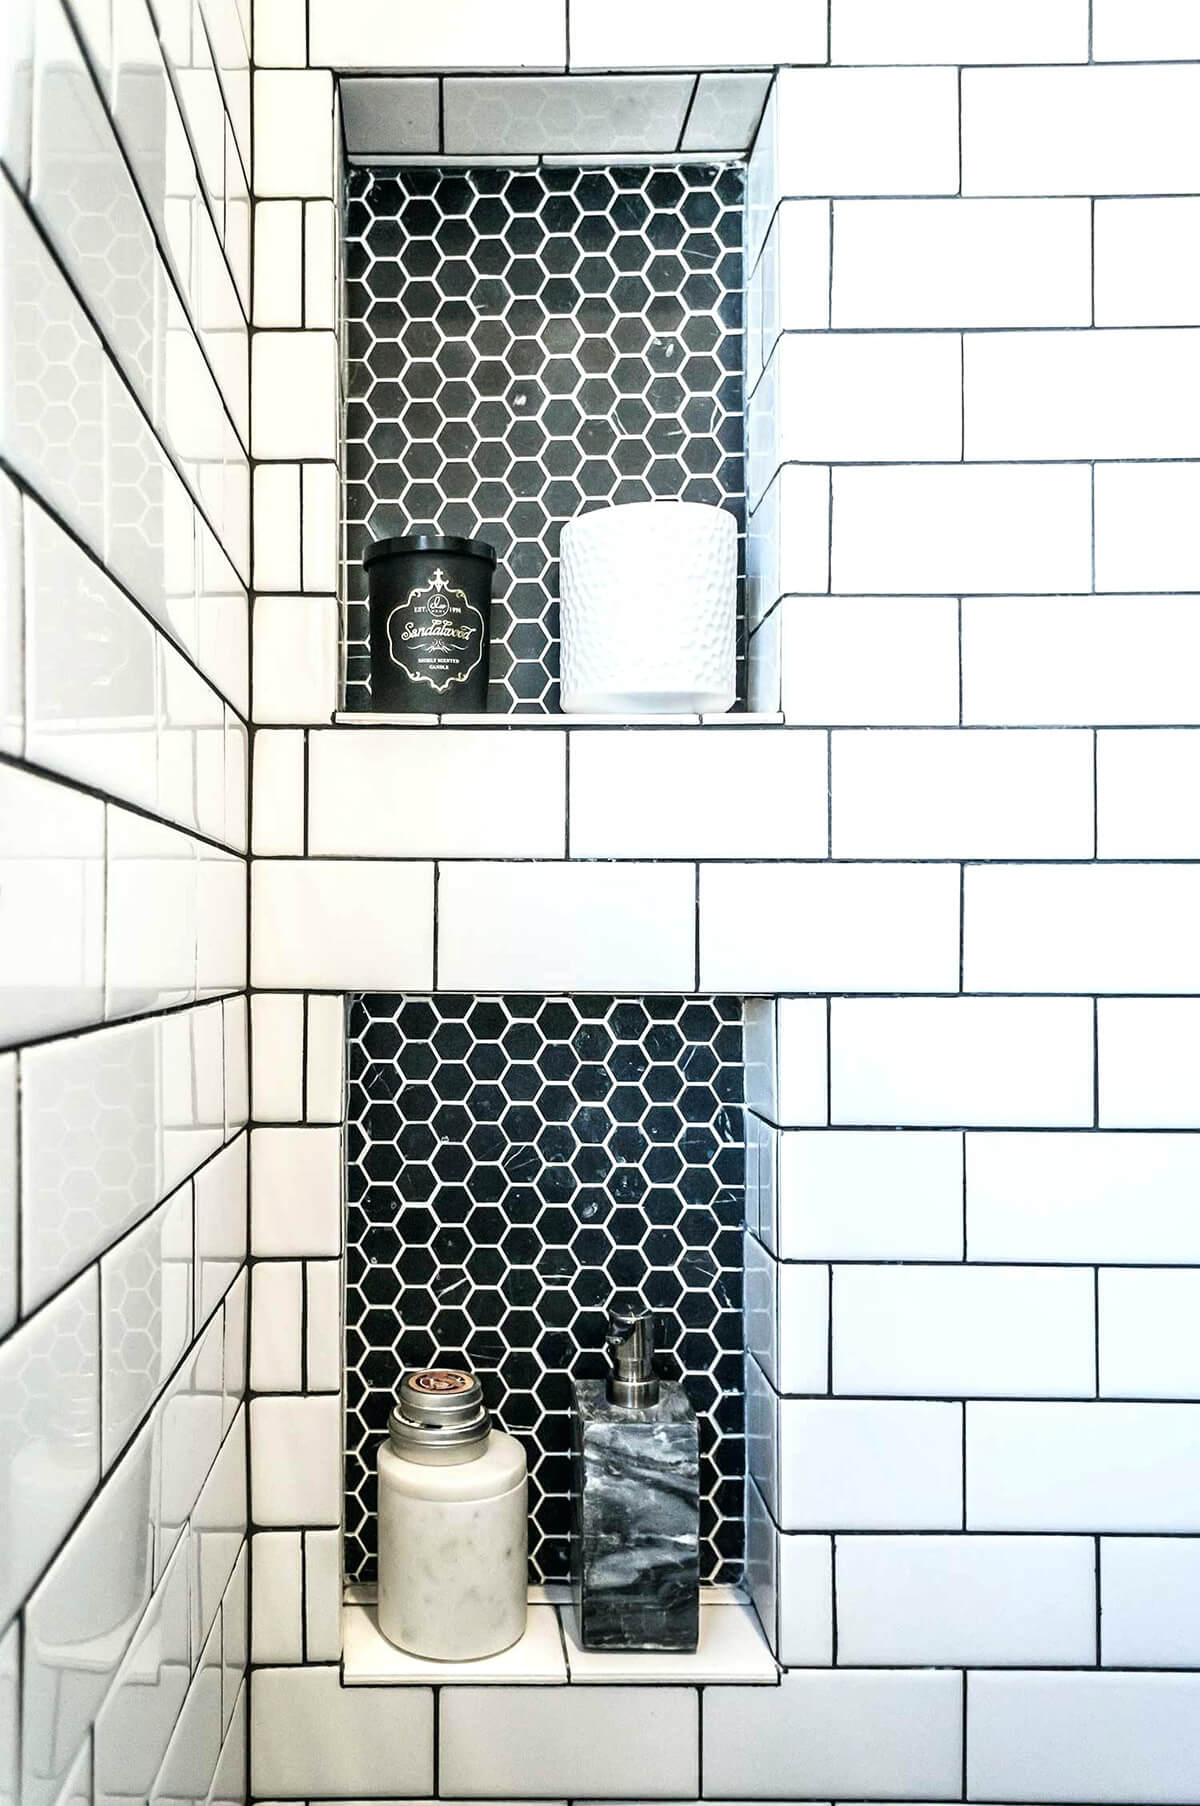 Built-in Tiled Shelves with Honeycomb Accent